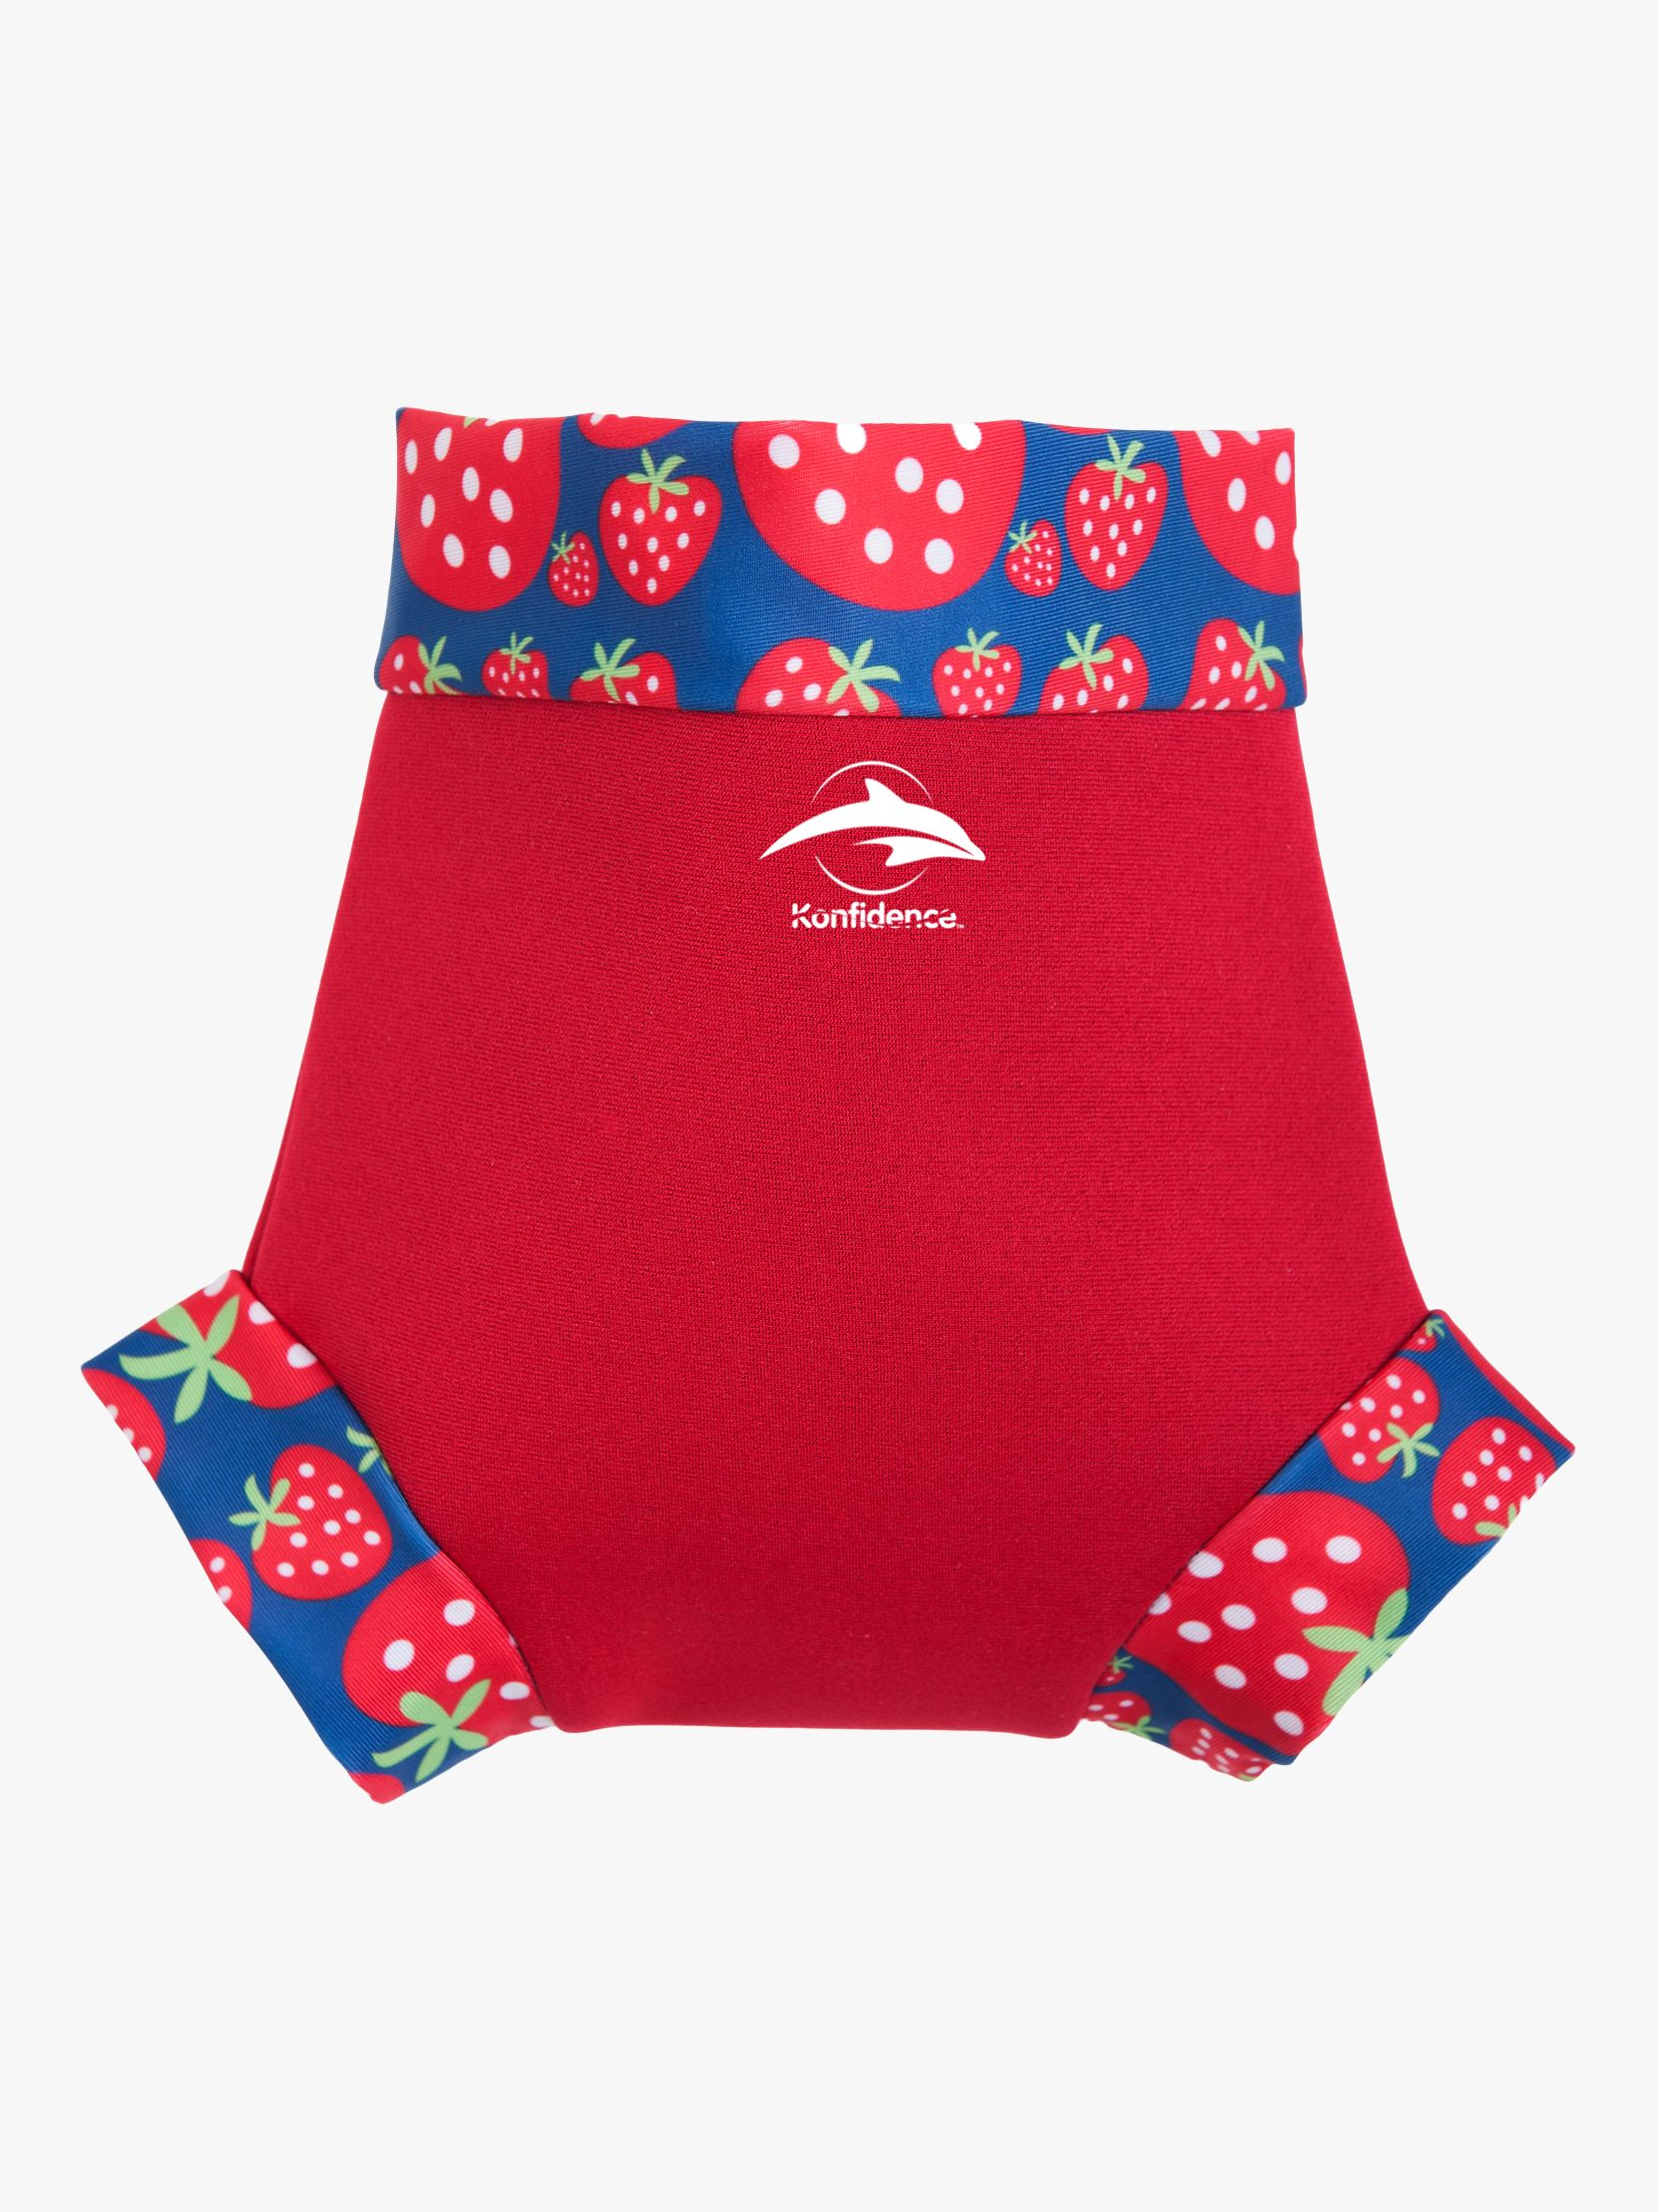 Konfidence Konfidence Baby Clown Strawberry Neo Nappy Cover, Red